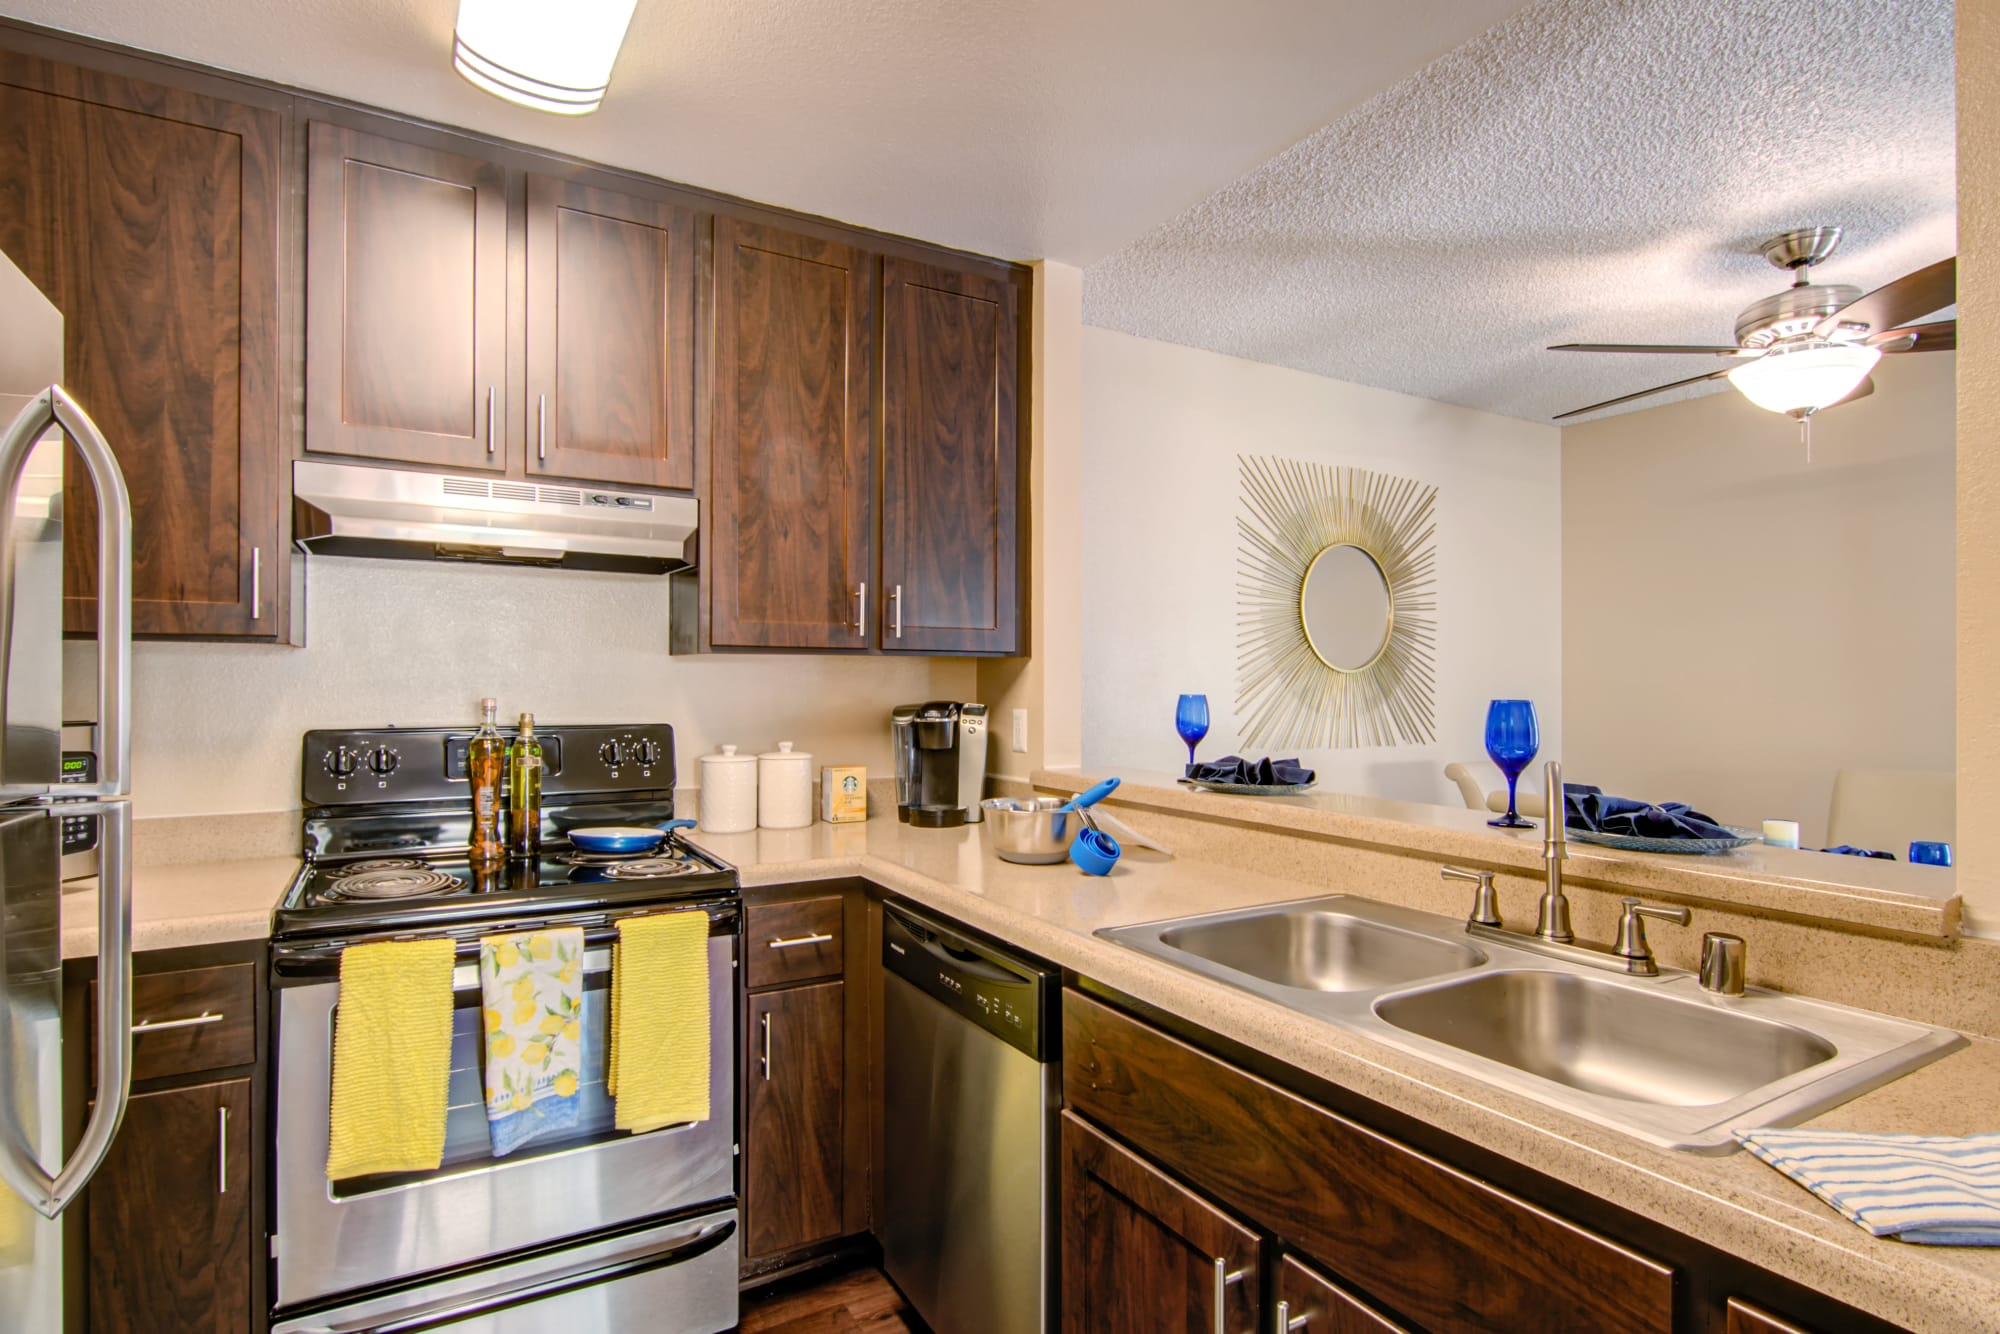 renovated Brown Kitchen with stainless steel appliances at Lakeview Village Apartments